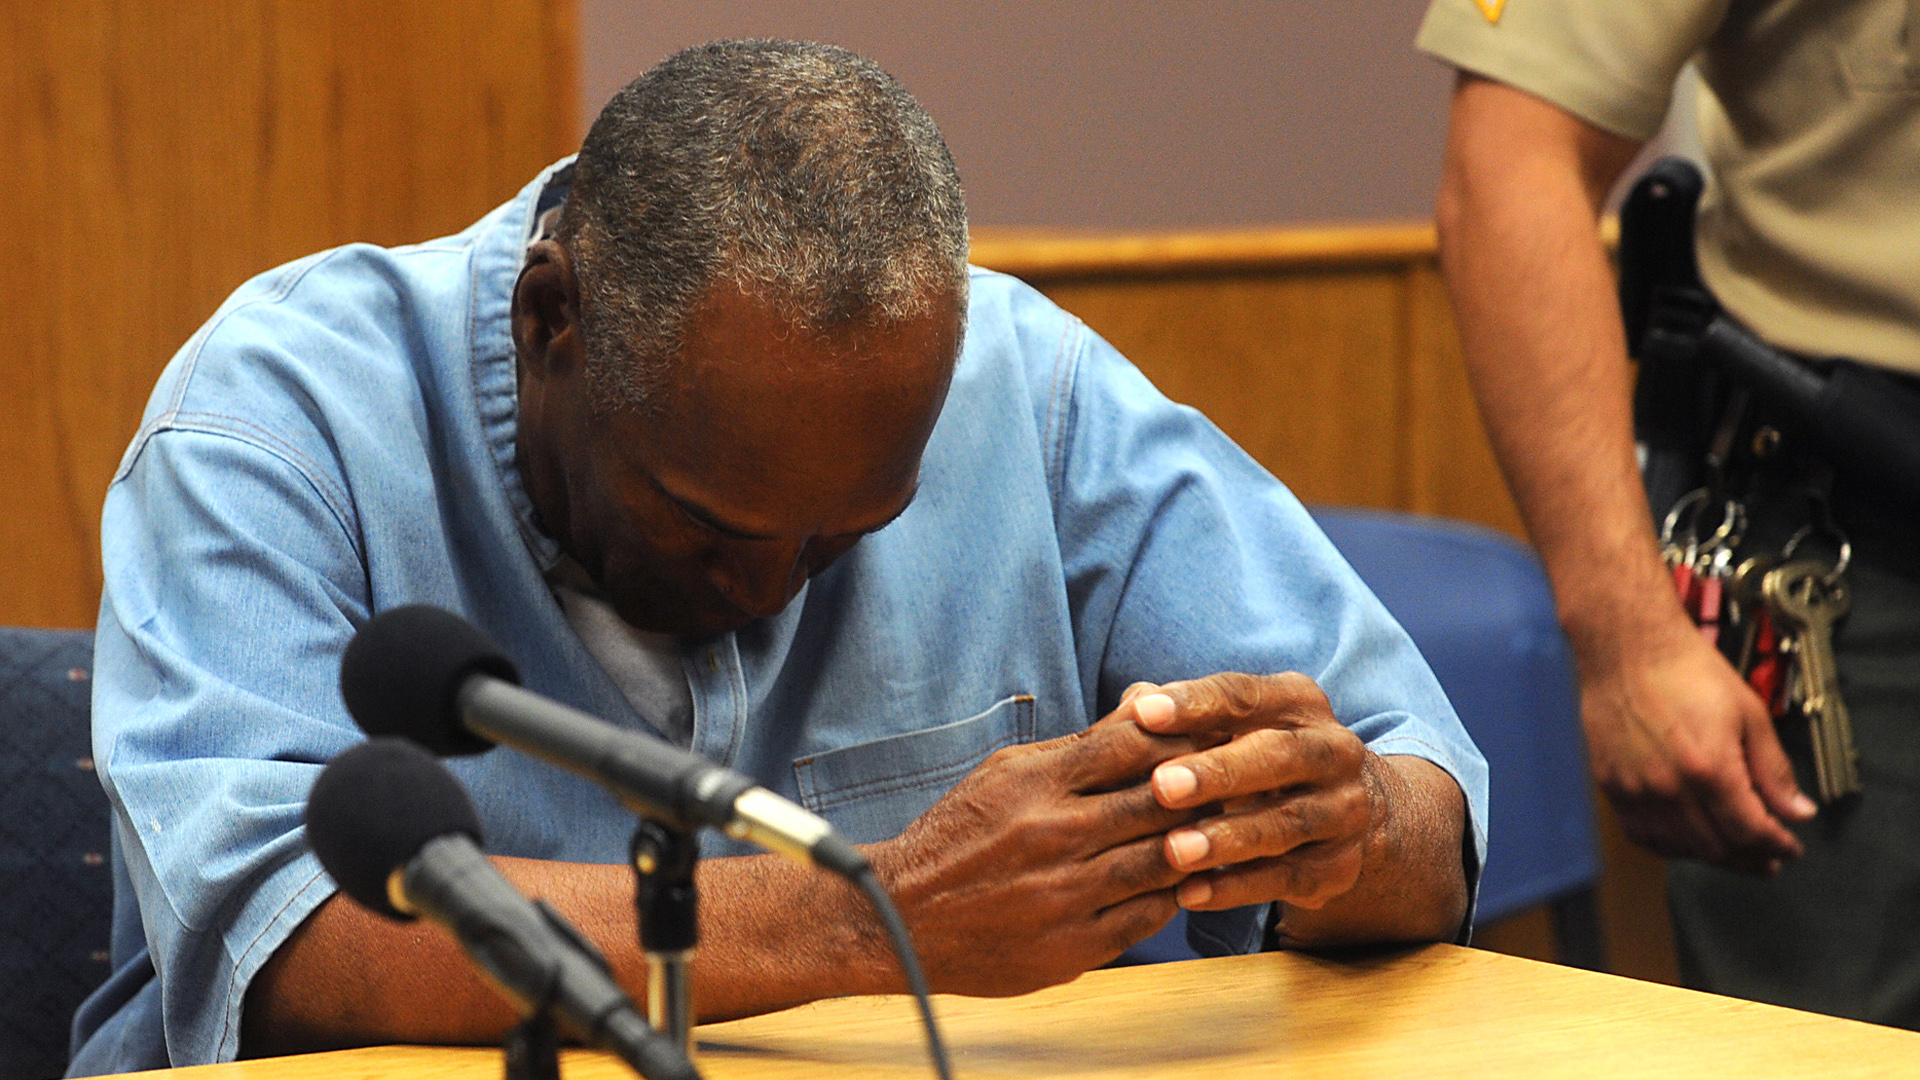 O.J. Simpson reacts after learning he was granted parole at Lovelock Correctional Center July 20, 2017 in Lovelock, Nevada. . (Credit: Jason Bean-Pool/Getty Images)